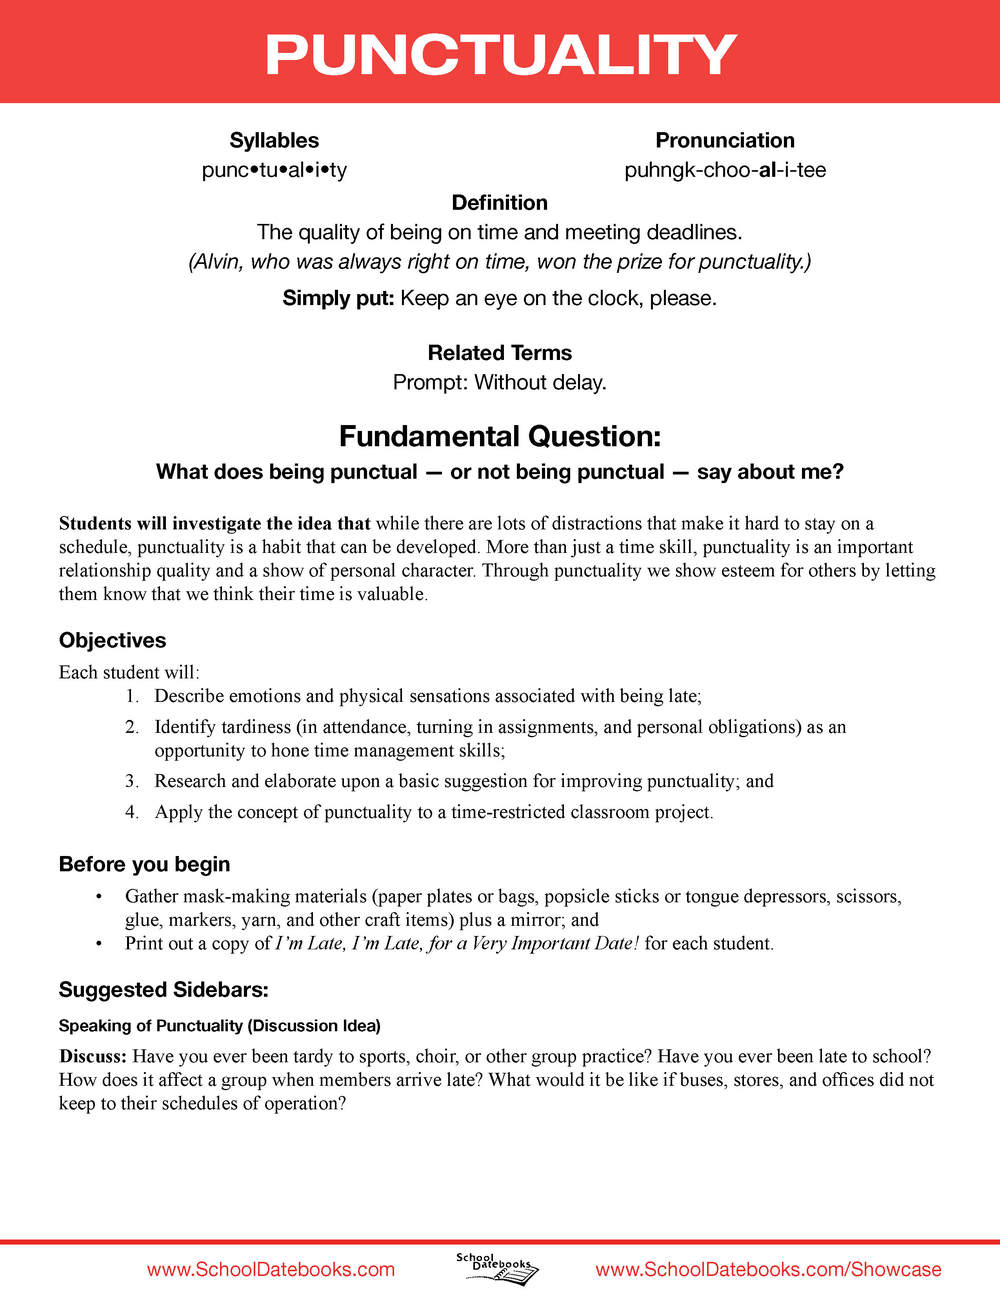 LessonPlan-Punctuality_Page_1.jpg